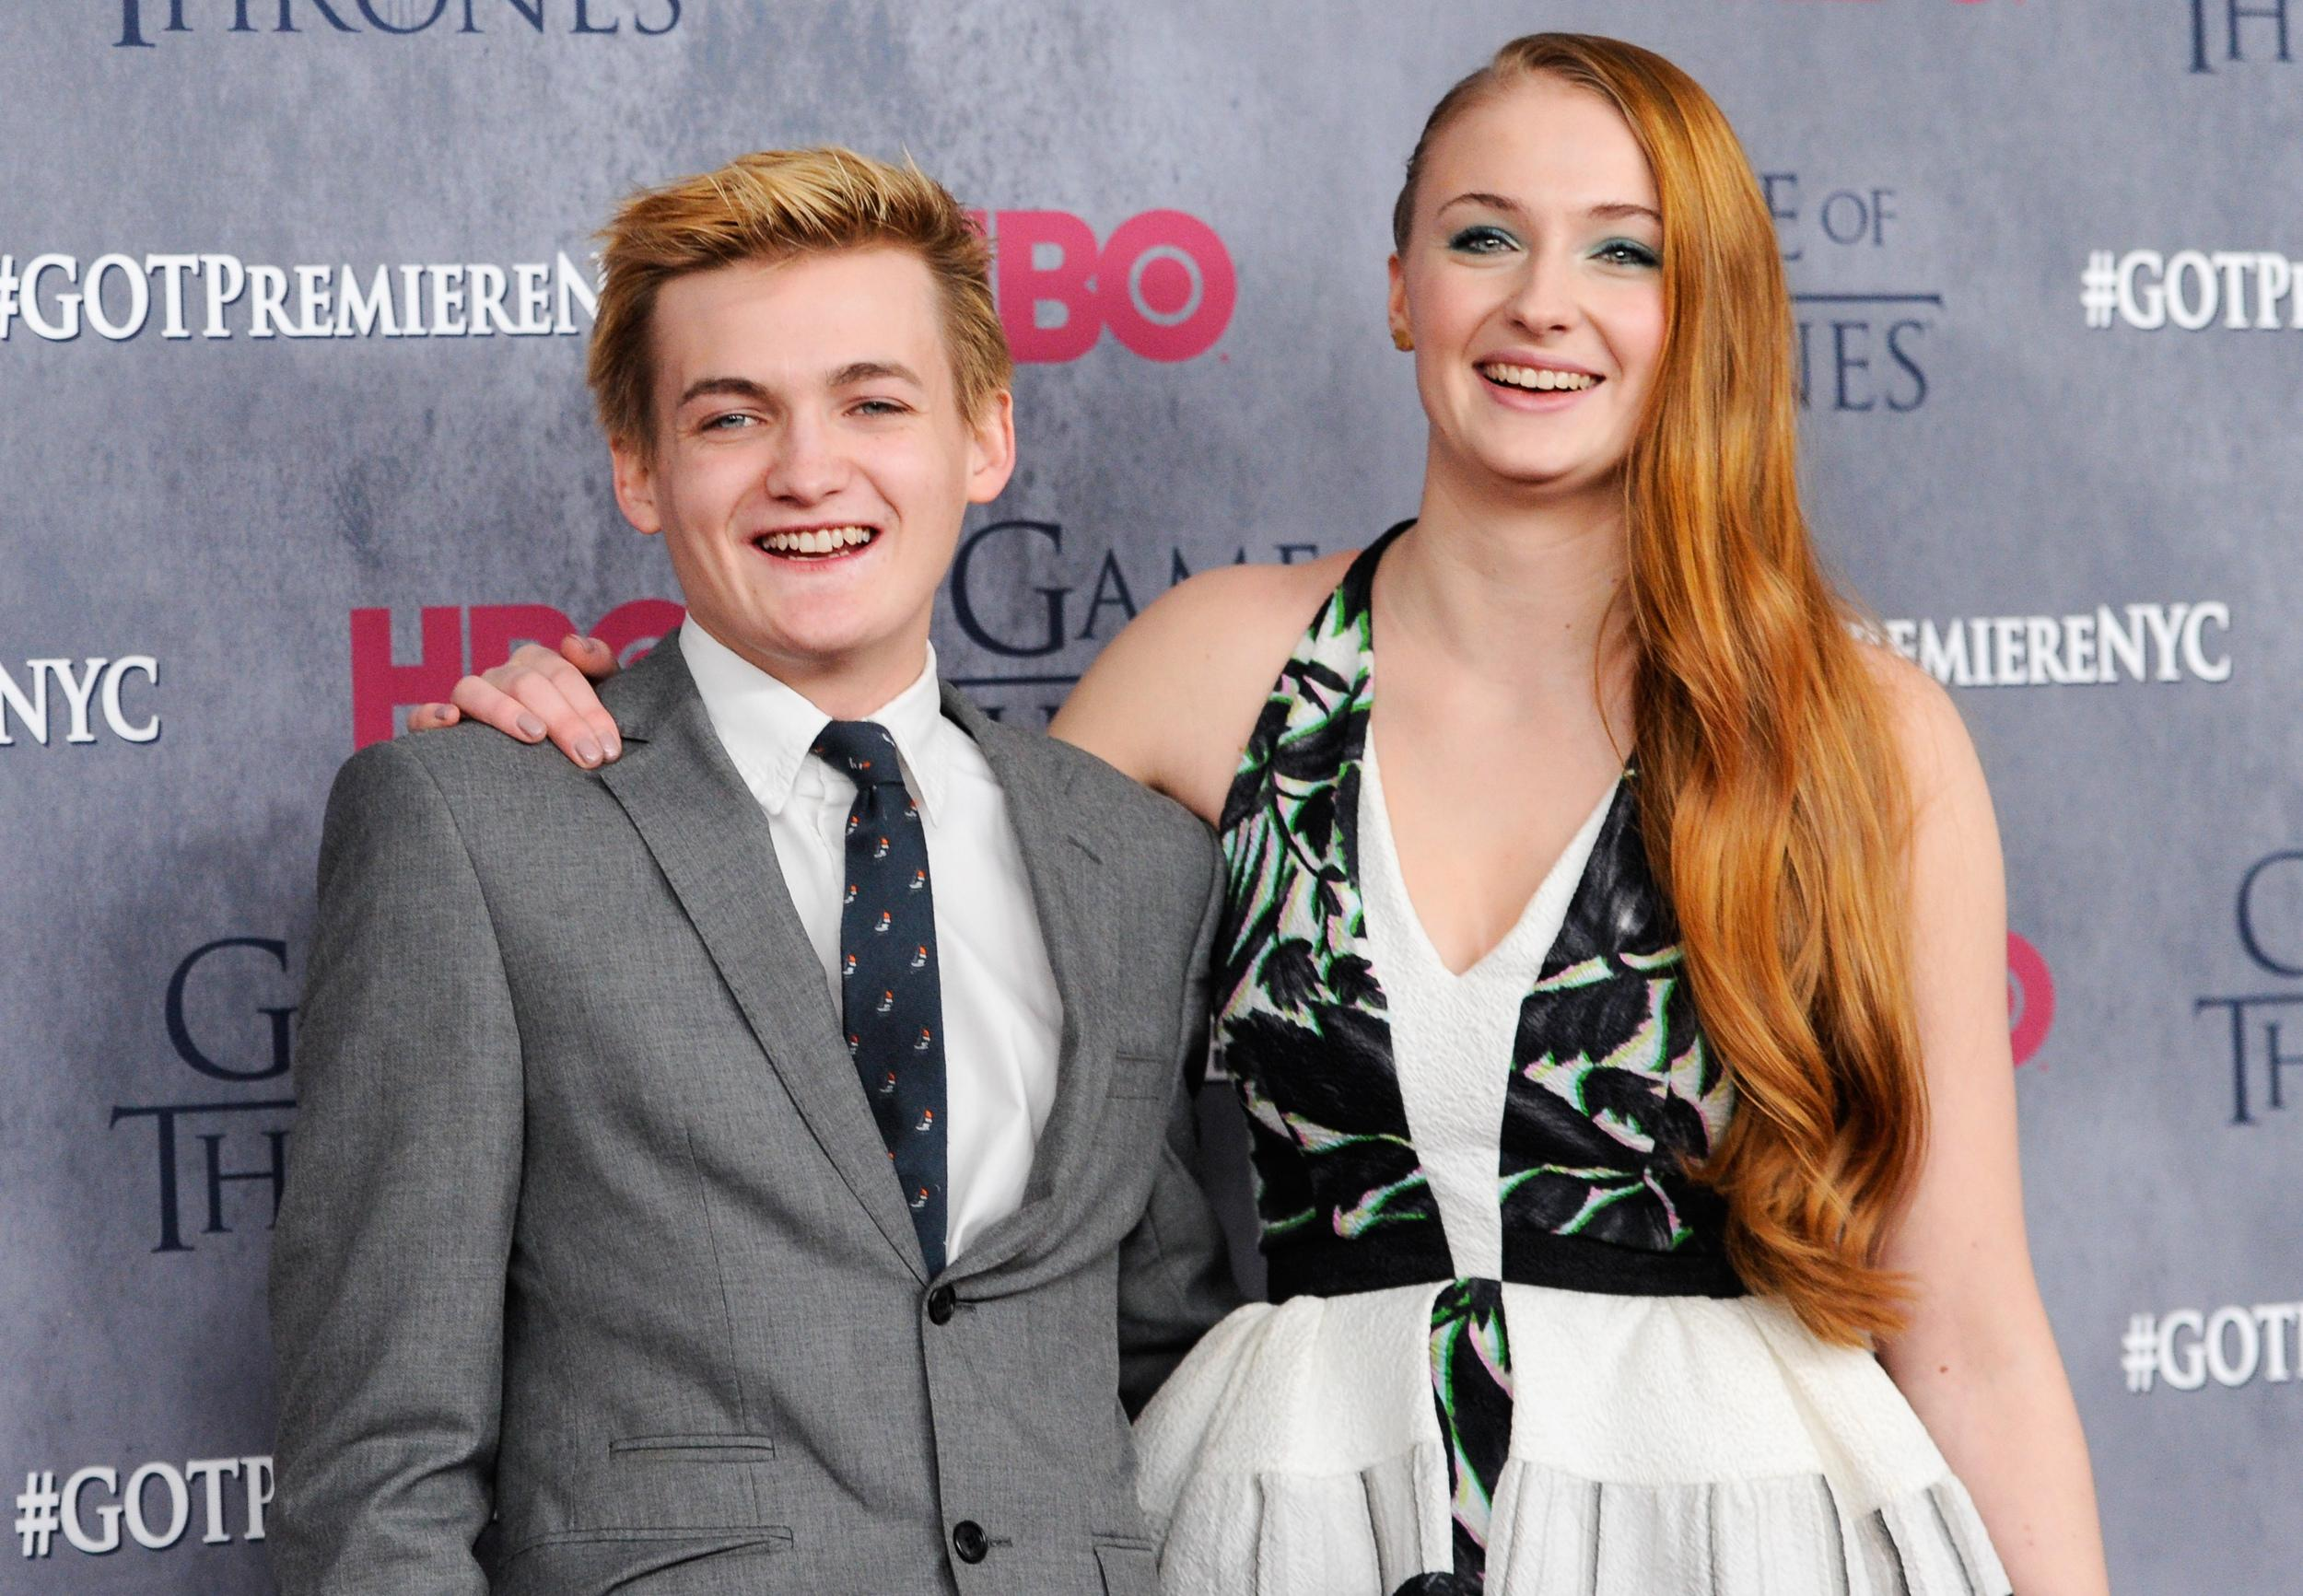 """Actors Jack Gleeson and Sophie Turner attend HBO's """"Game of Thrones"""" fourth season premiere at Avery Fisher Hall on Tuesday, March 18, 2014 in New York. (Photo by Evan Agostini/Invision/AP)"""